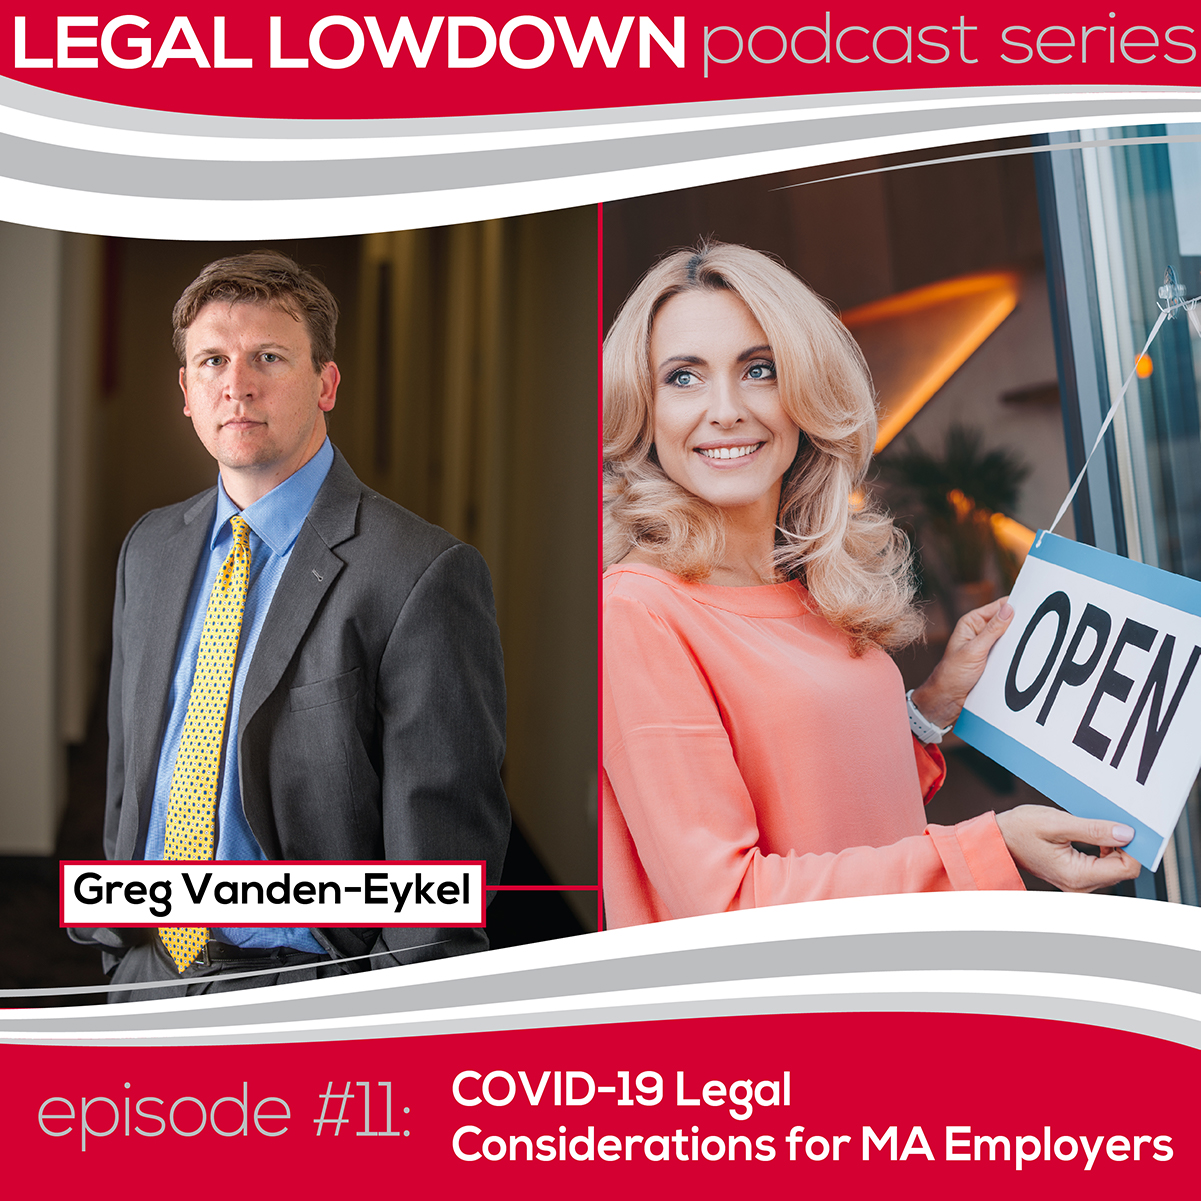 Legal Lowdown Podcast – Episode #11 – COVID-19 Legal Considerations for MA Employers